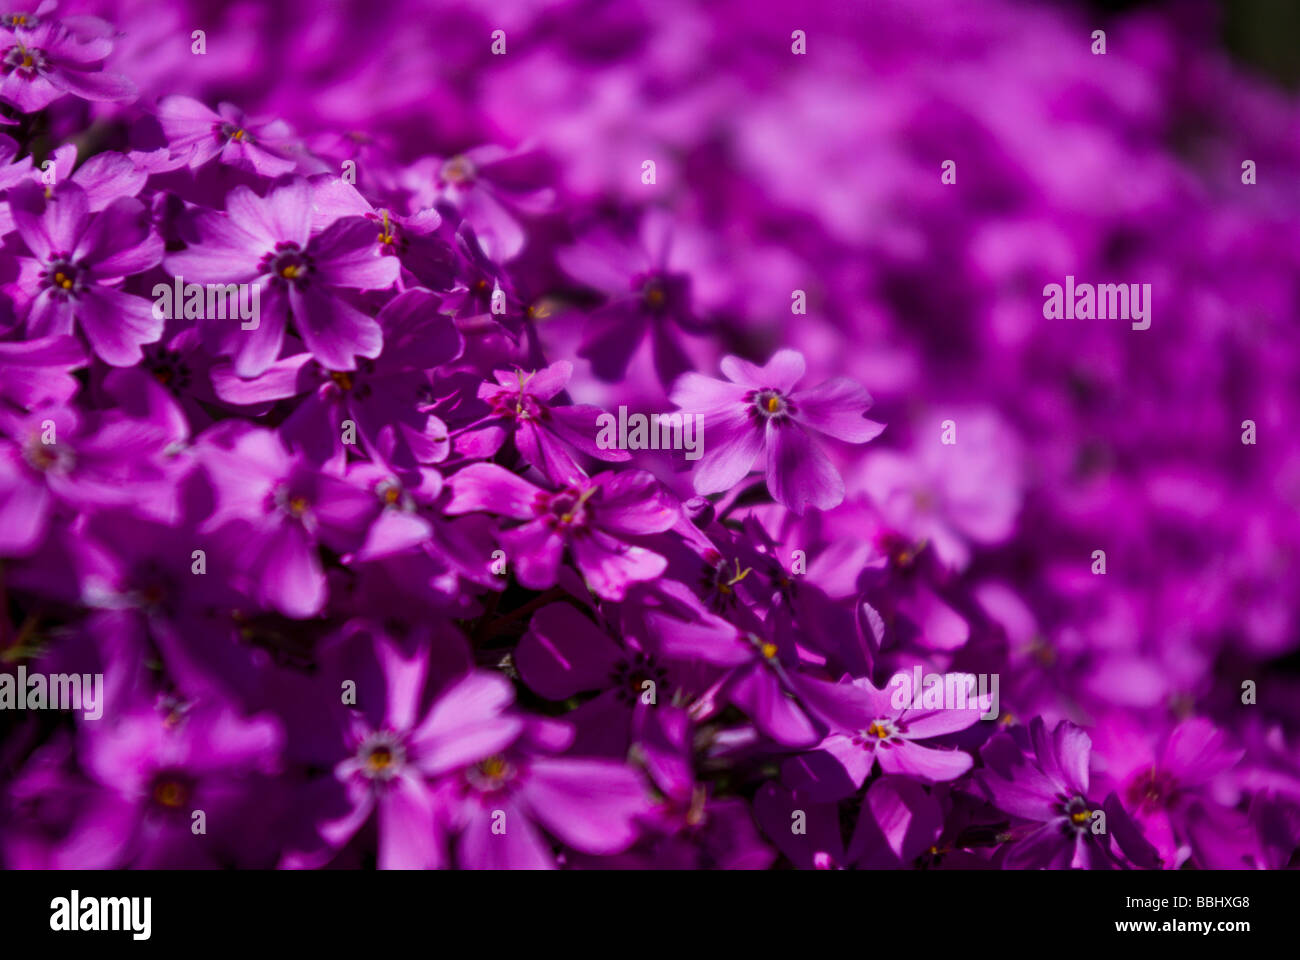 Pink flowers in a spring garden, low depth of field - Stock Image